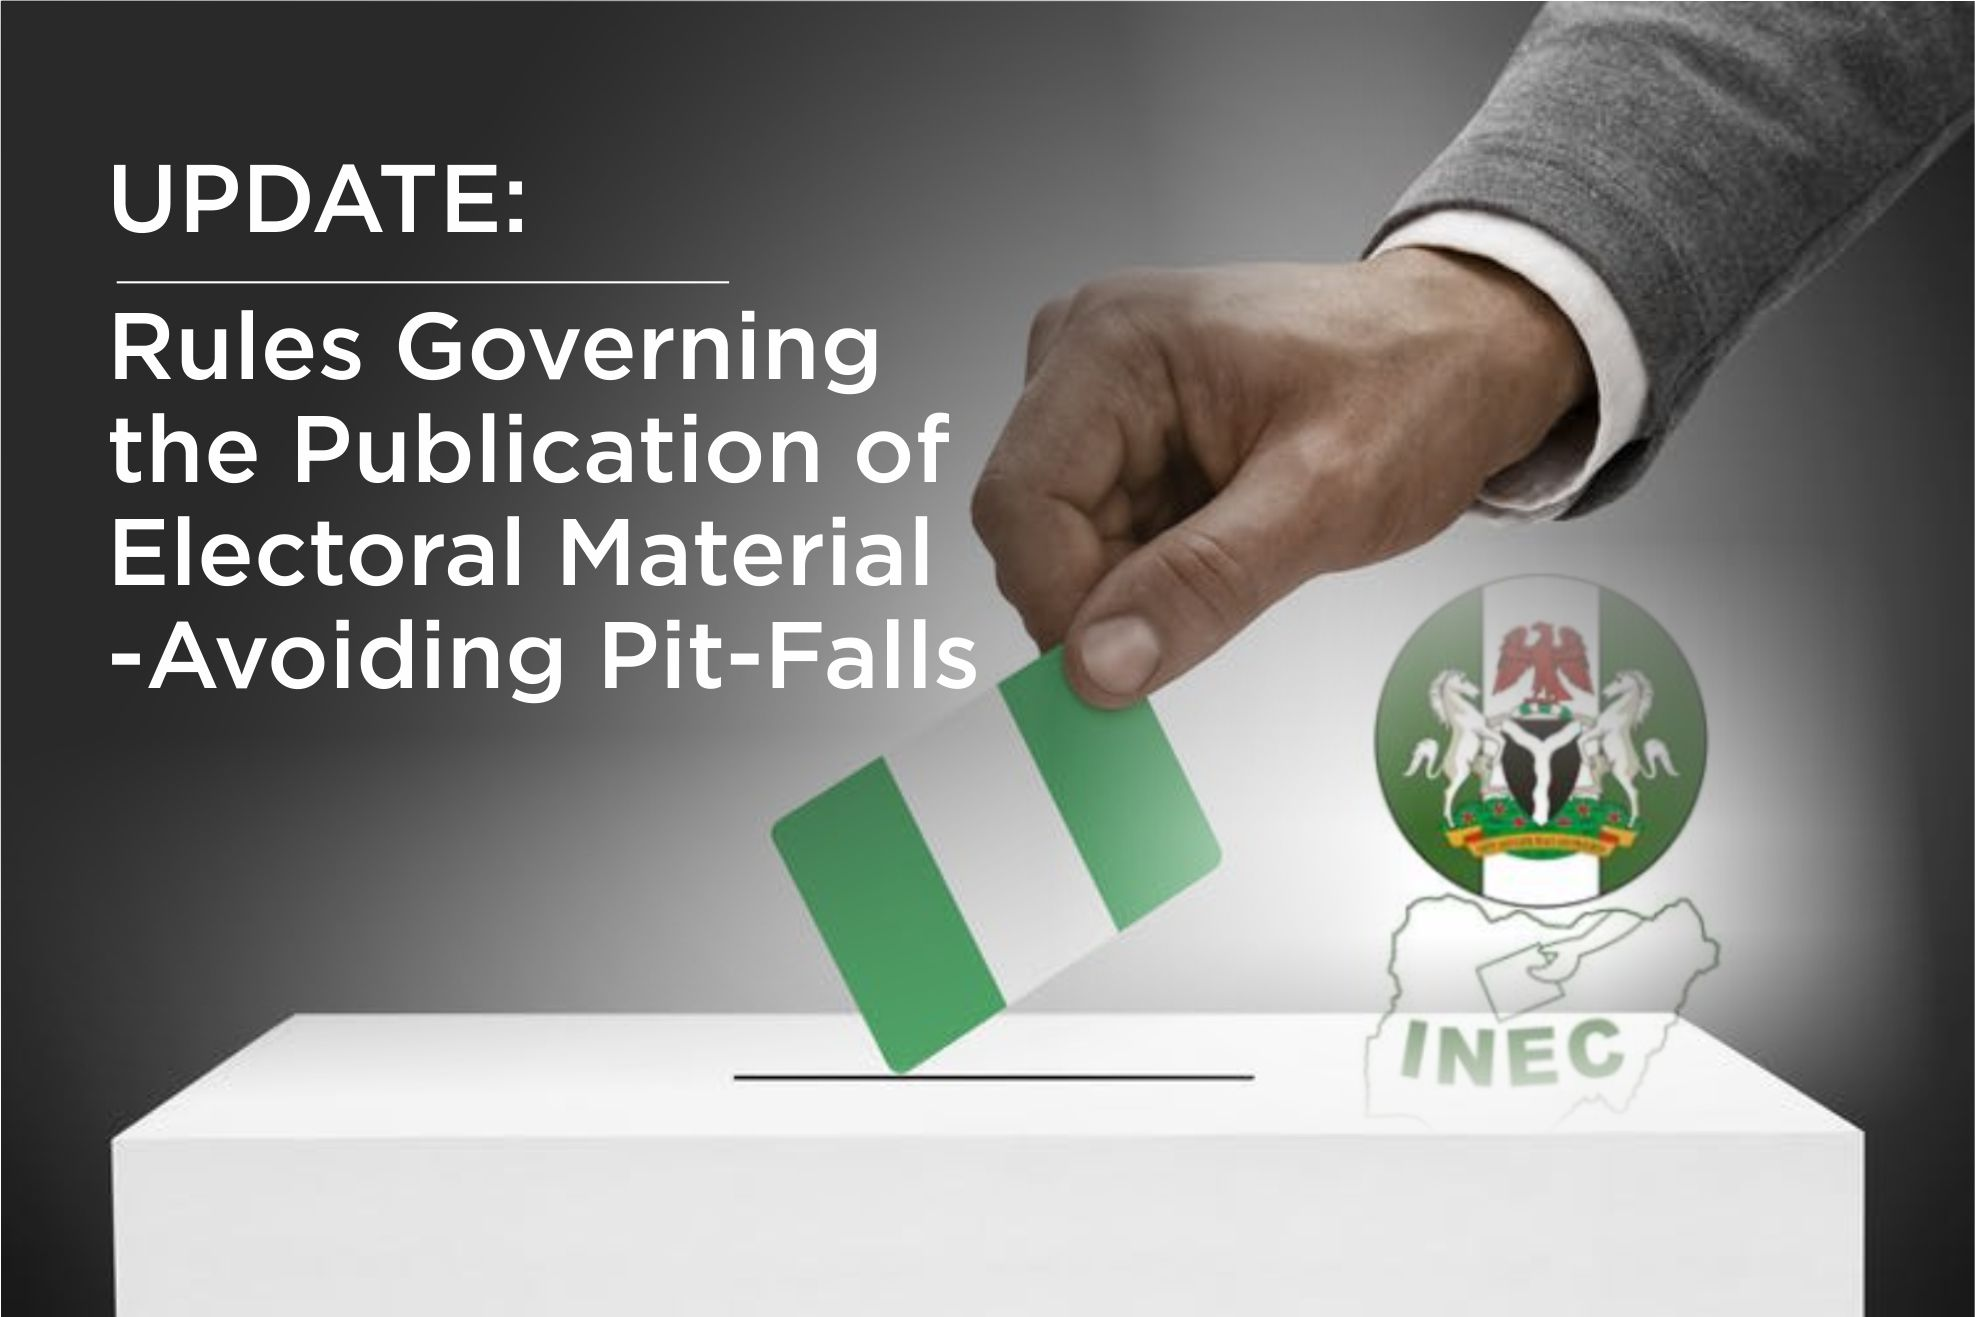 RULES GOVERNING THE PUBLICATION OF ELECTORAL MATERIAL - AVOIDING PIT-FALLS